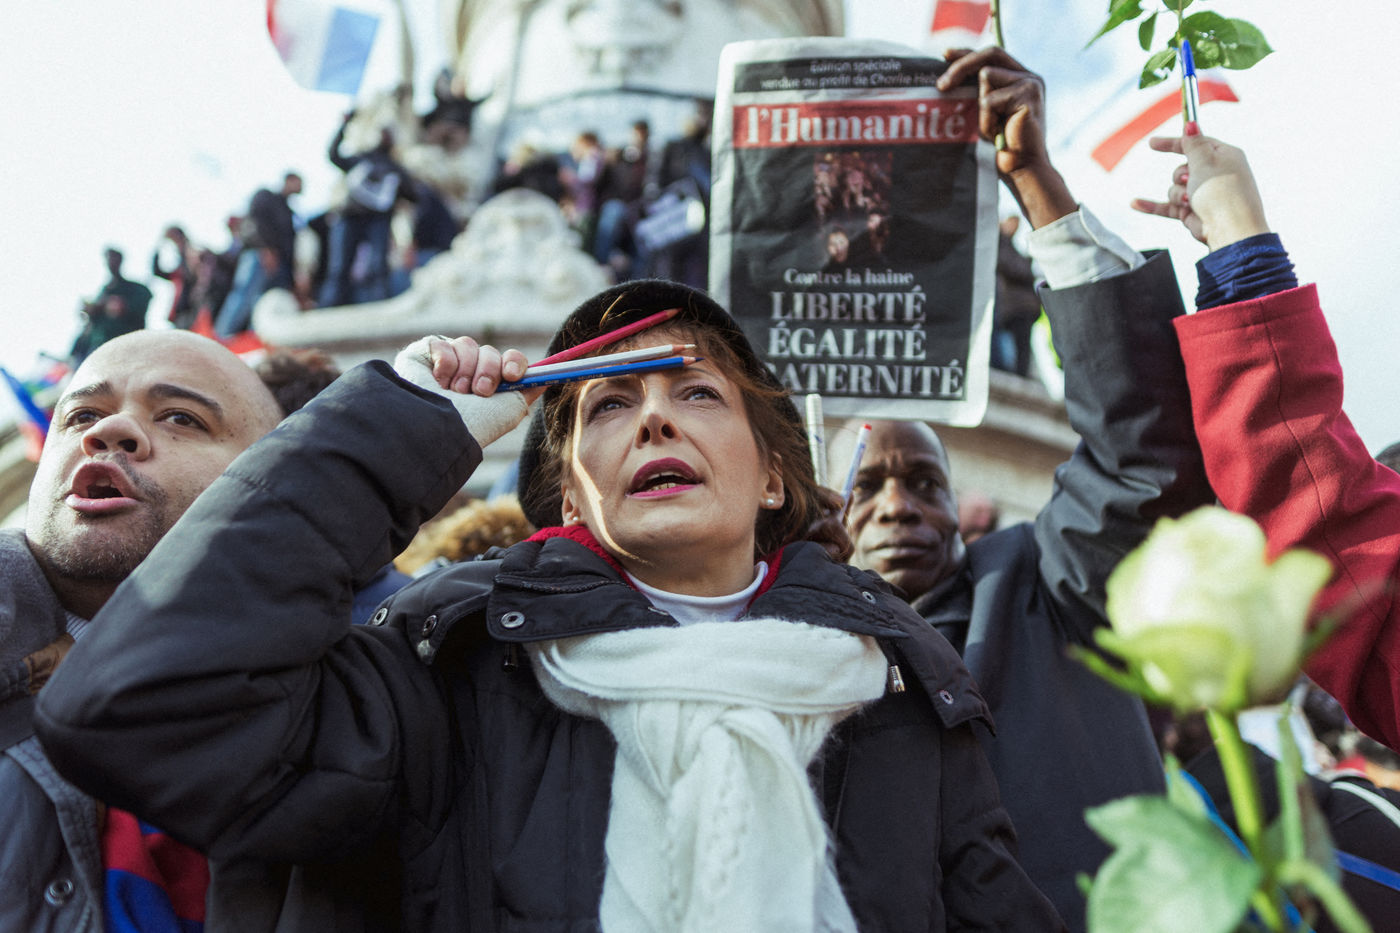 TRIBUTE TO VICTIMS OF CHARLIE HEBDO NEWSPAPER ATTACKS